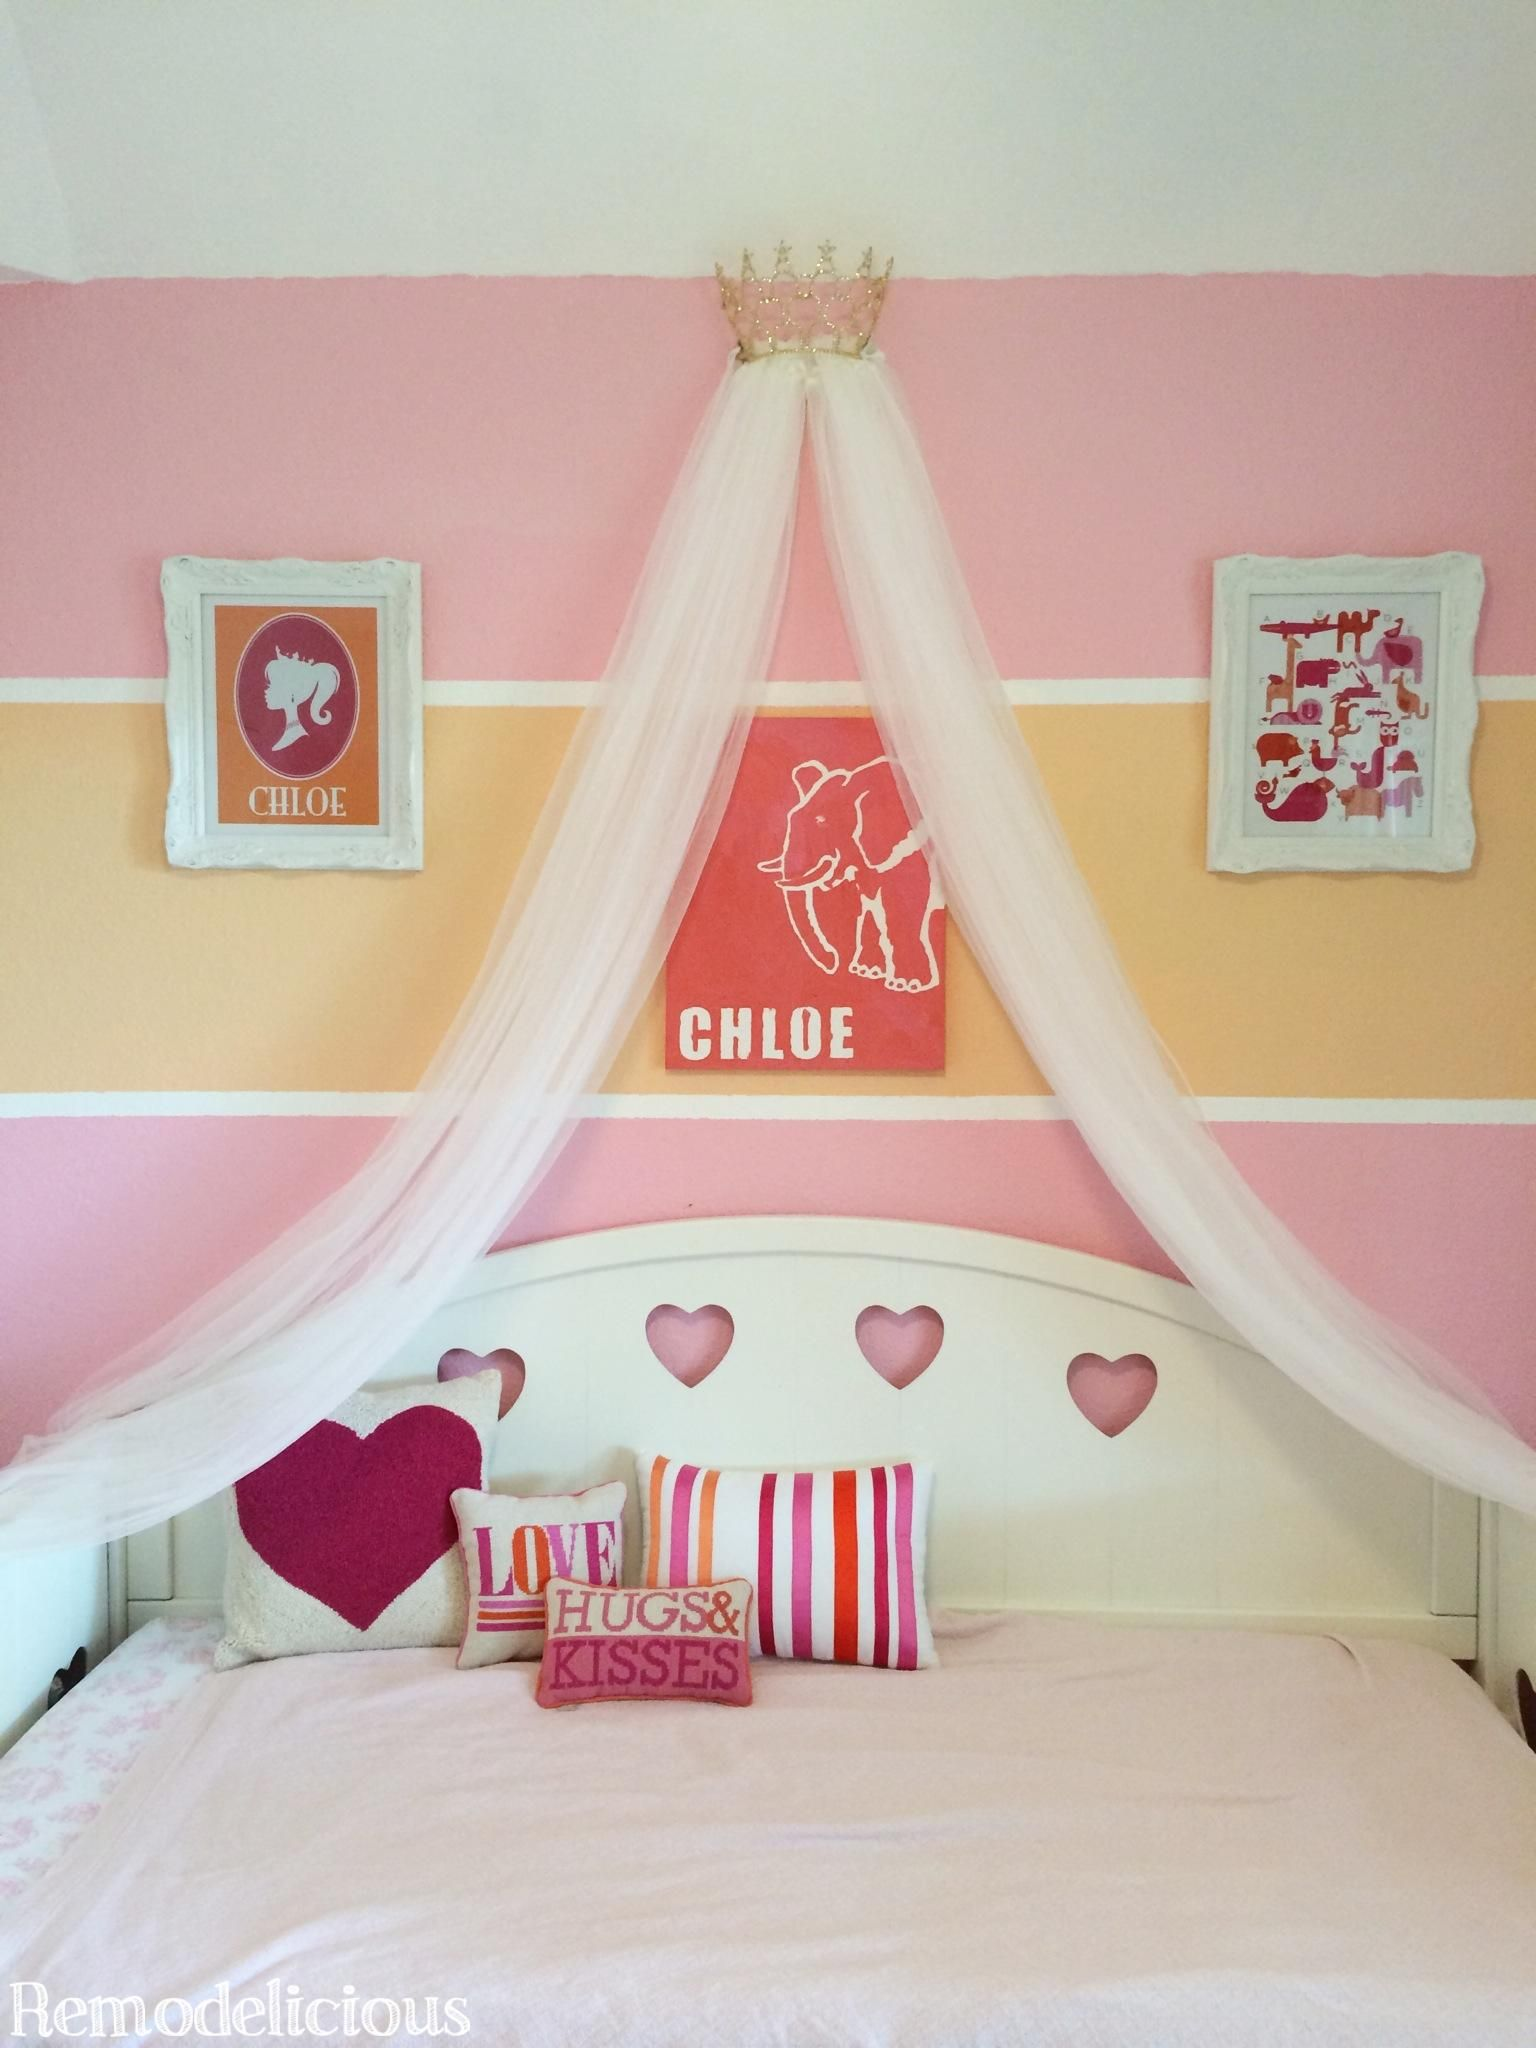 Diy Princess Crown Bed Canopy From Upcycled Pageant Crown Princess Bed Minimalist Kids Room Yellow Girls Room